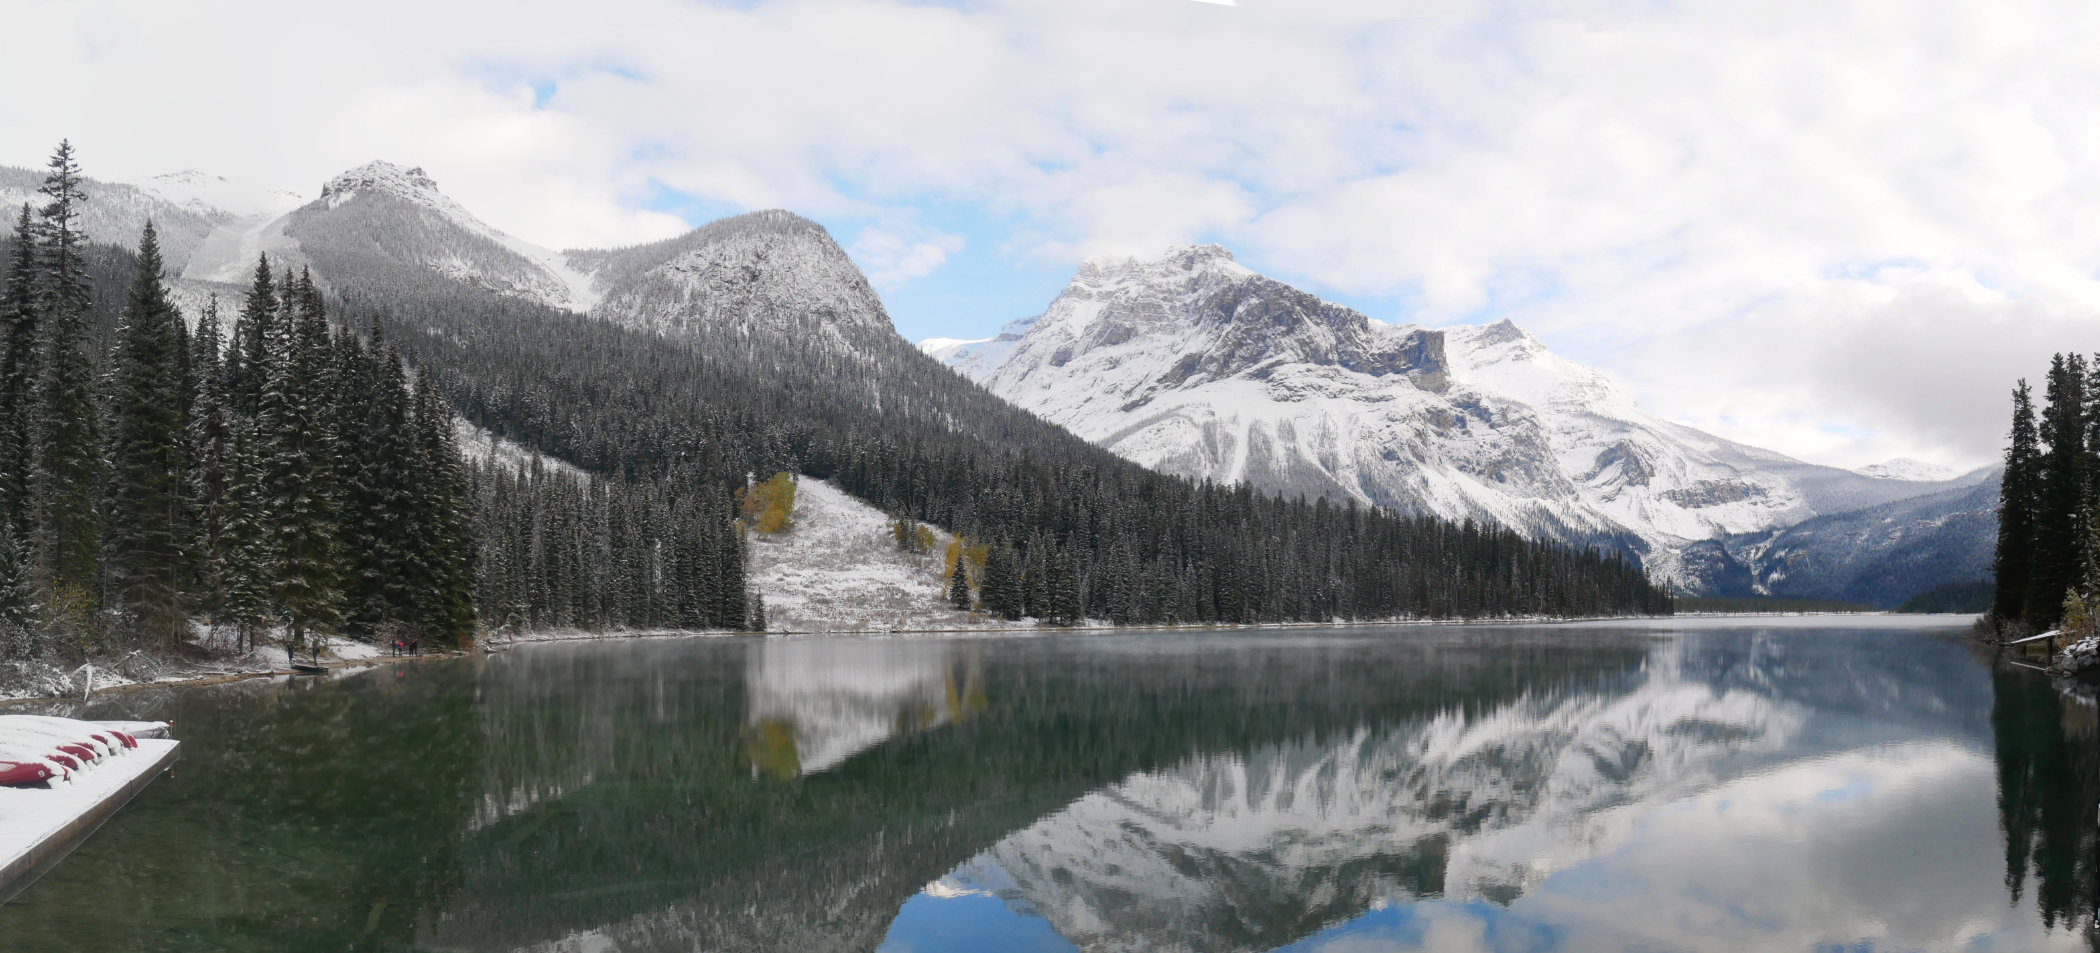 First view of Emerald Lake